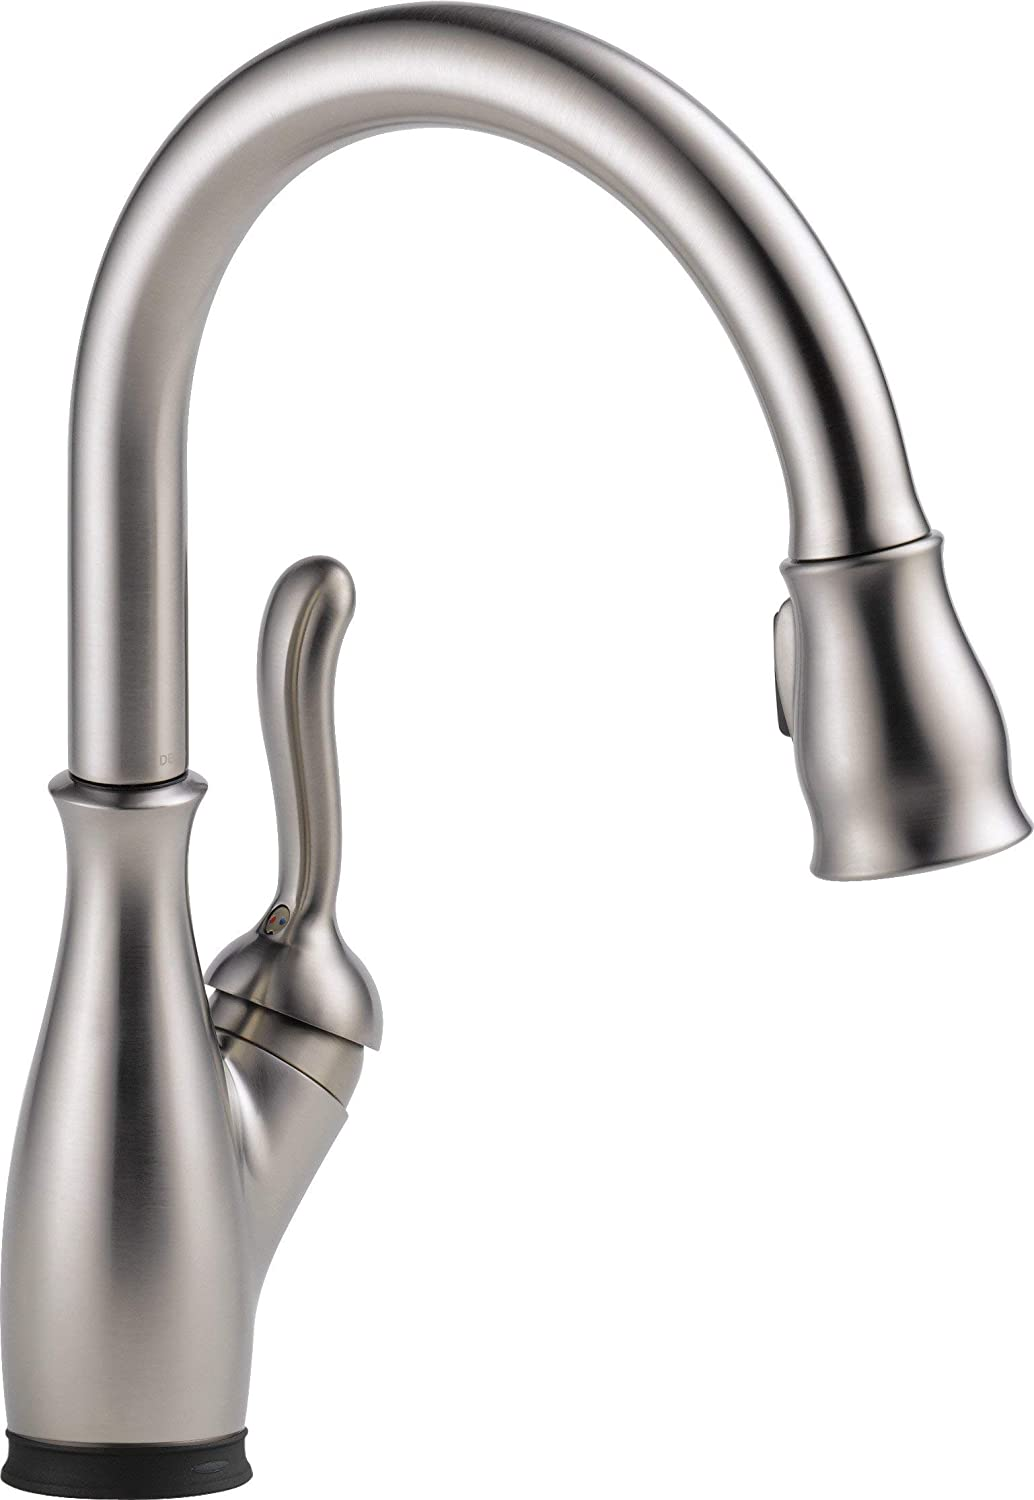 Delta Faucet Leland Single-Handle Touch Kitchen Sink Faucet with Pull Down Sprayer, Touch2O and ShieldSpray Technology, Magnetic Docking, SpotShield Stainless 9178T-SP-DST Renewed